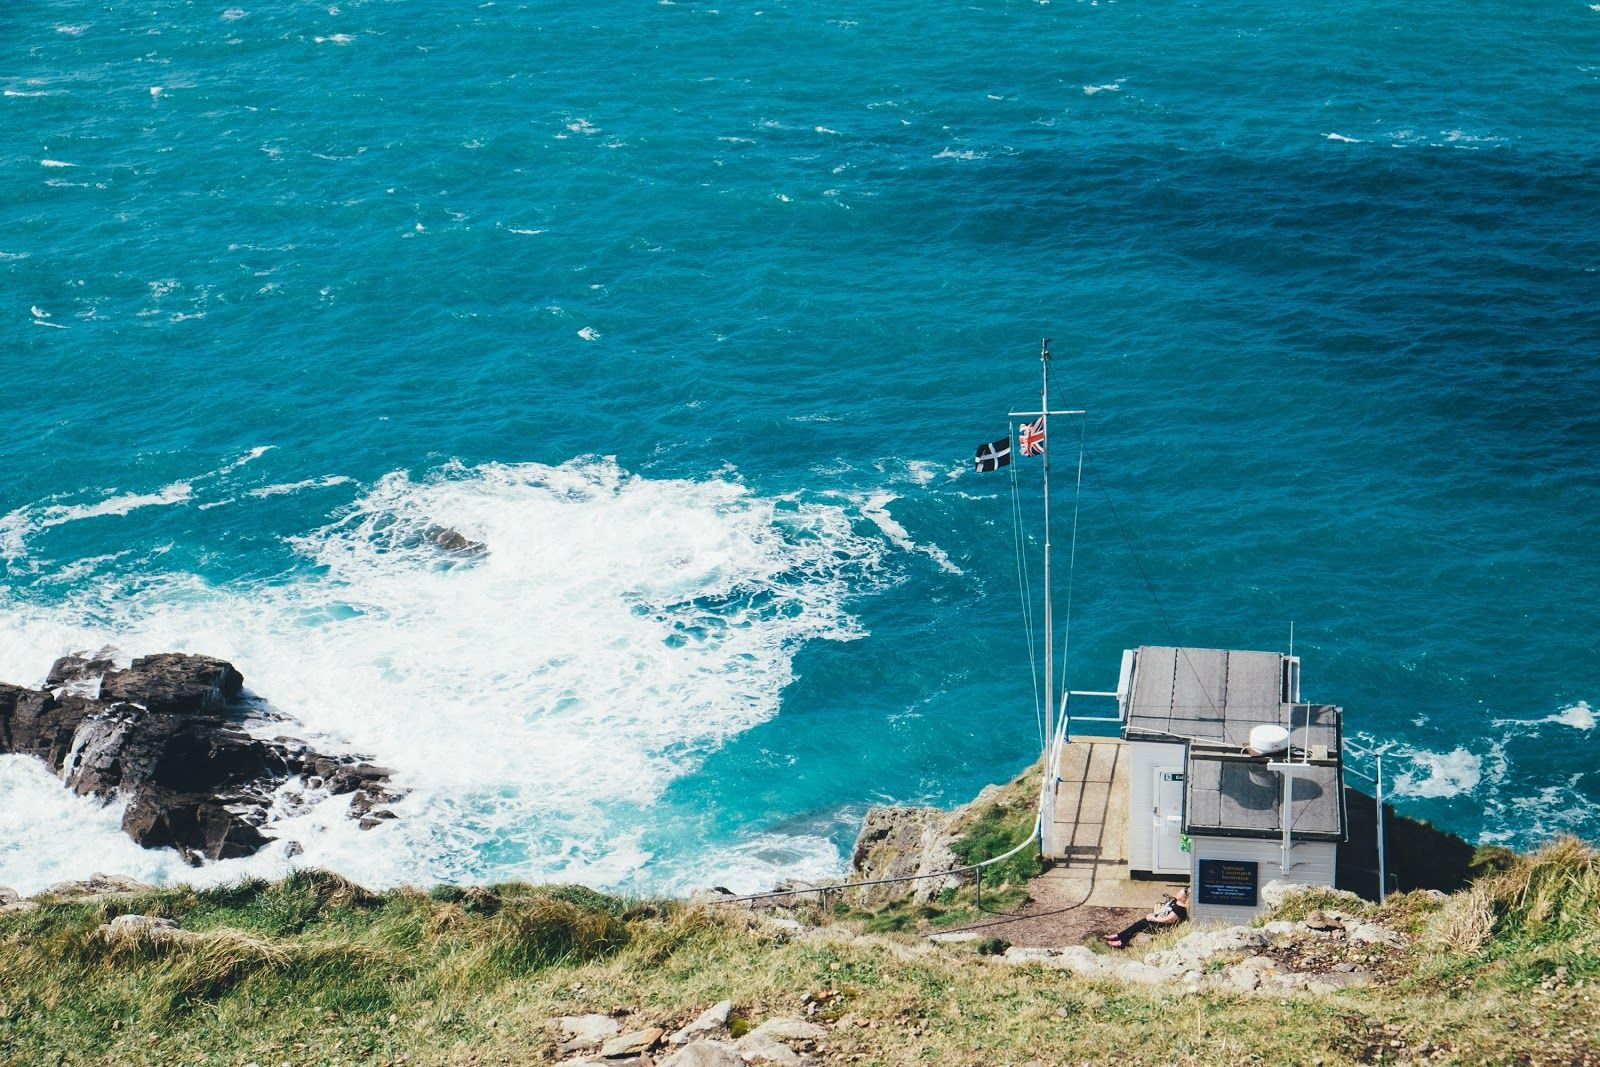 The RNLI St Ives Remote Station